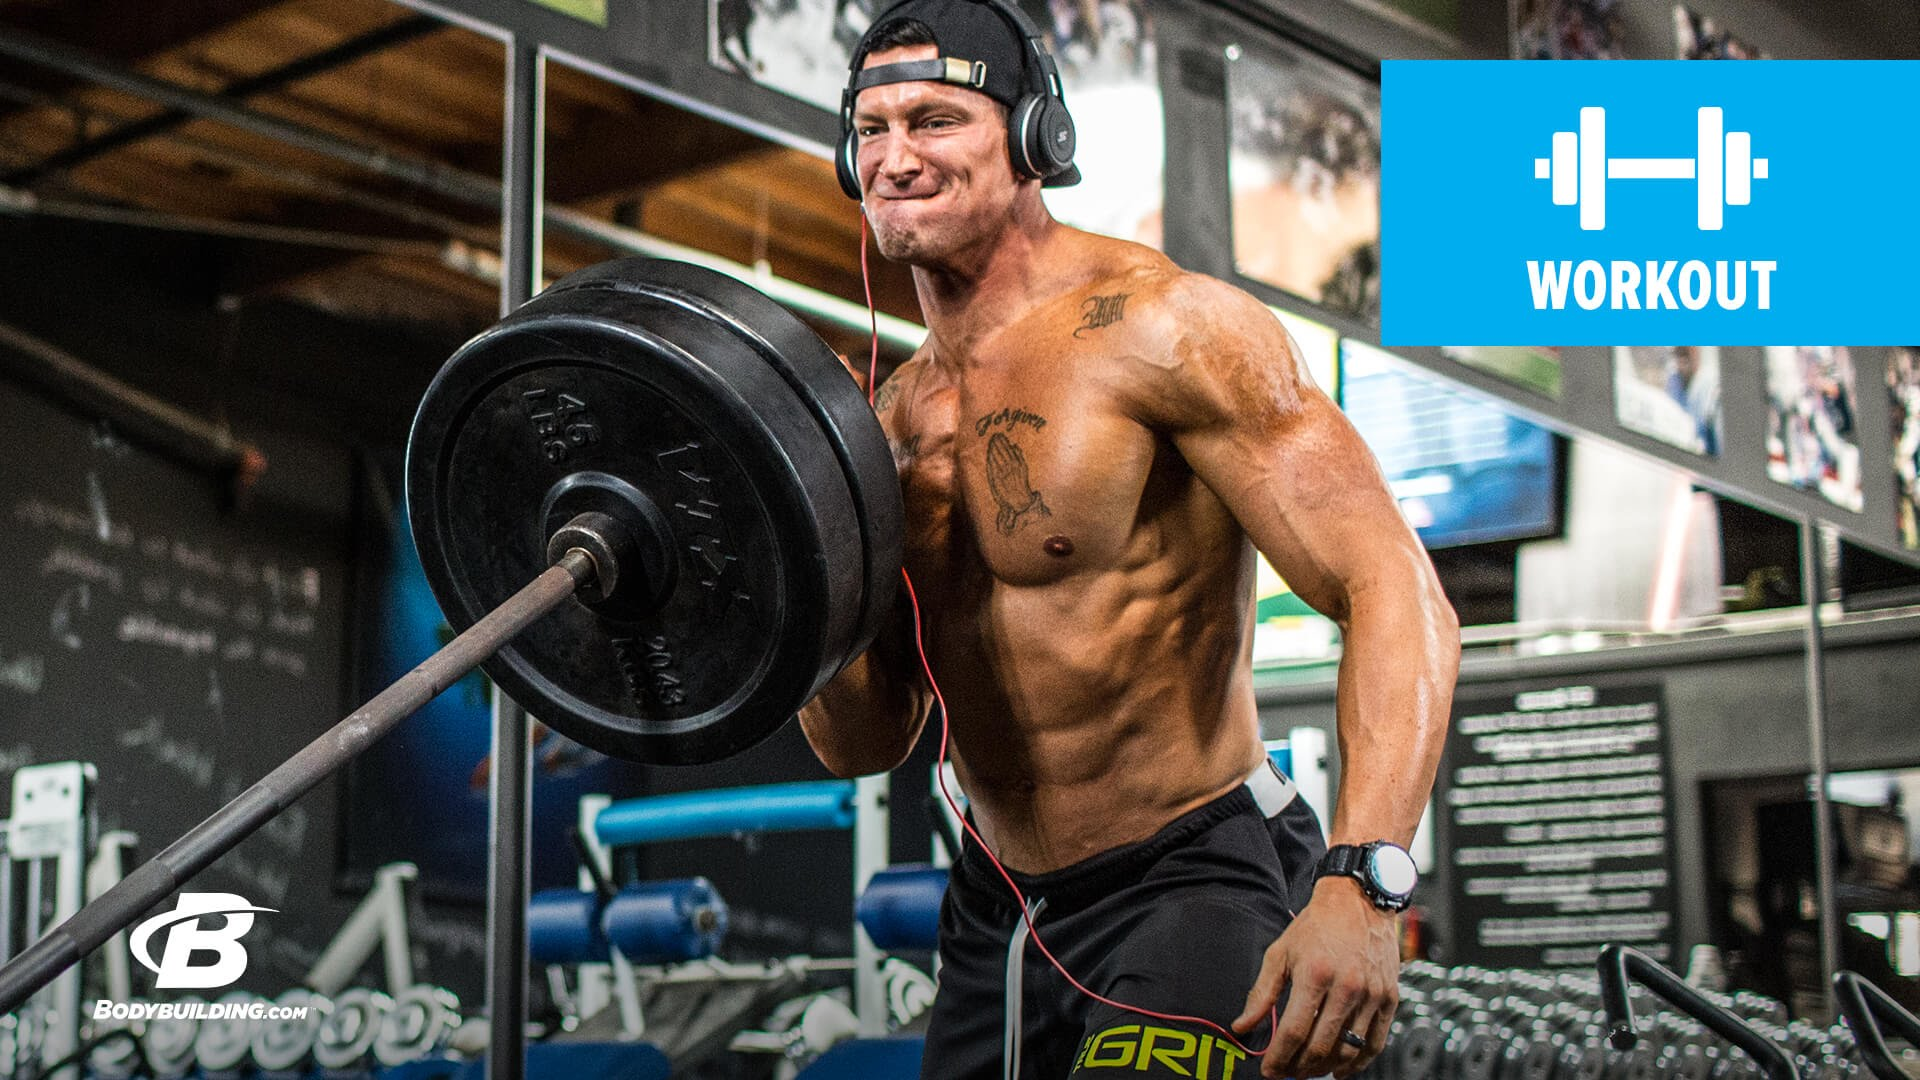 how to get hypertrophy in abs